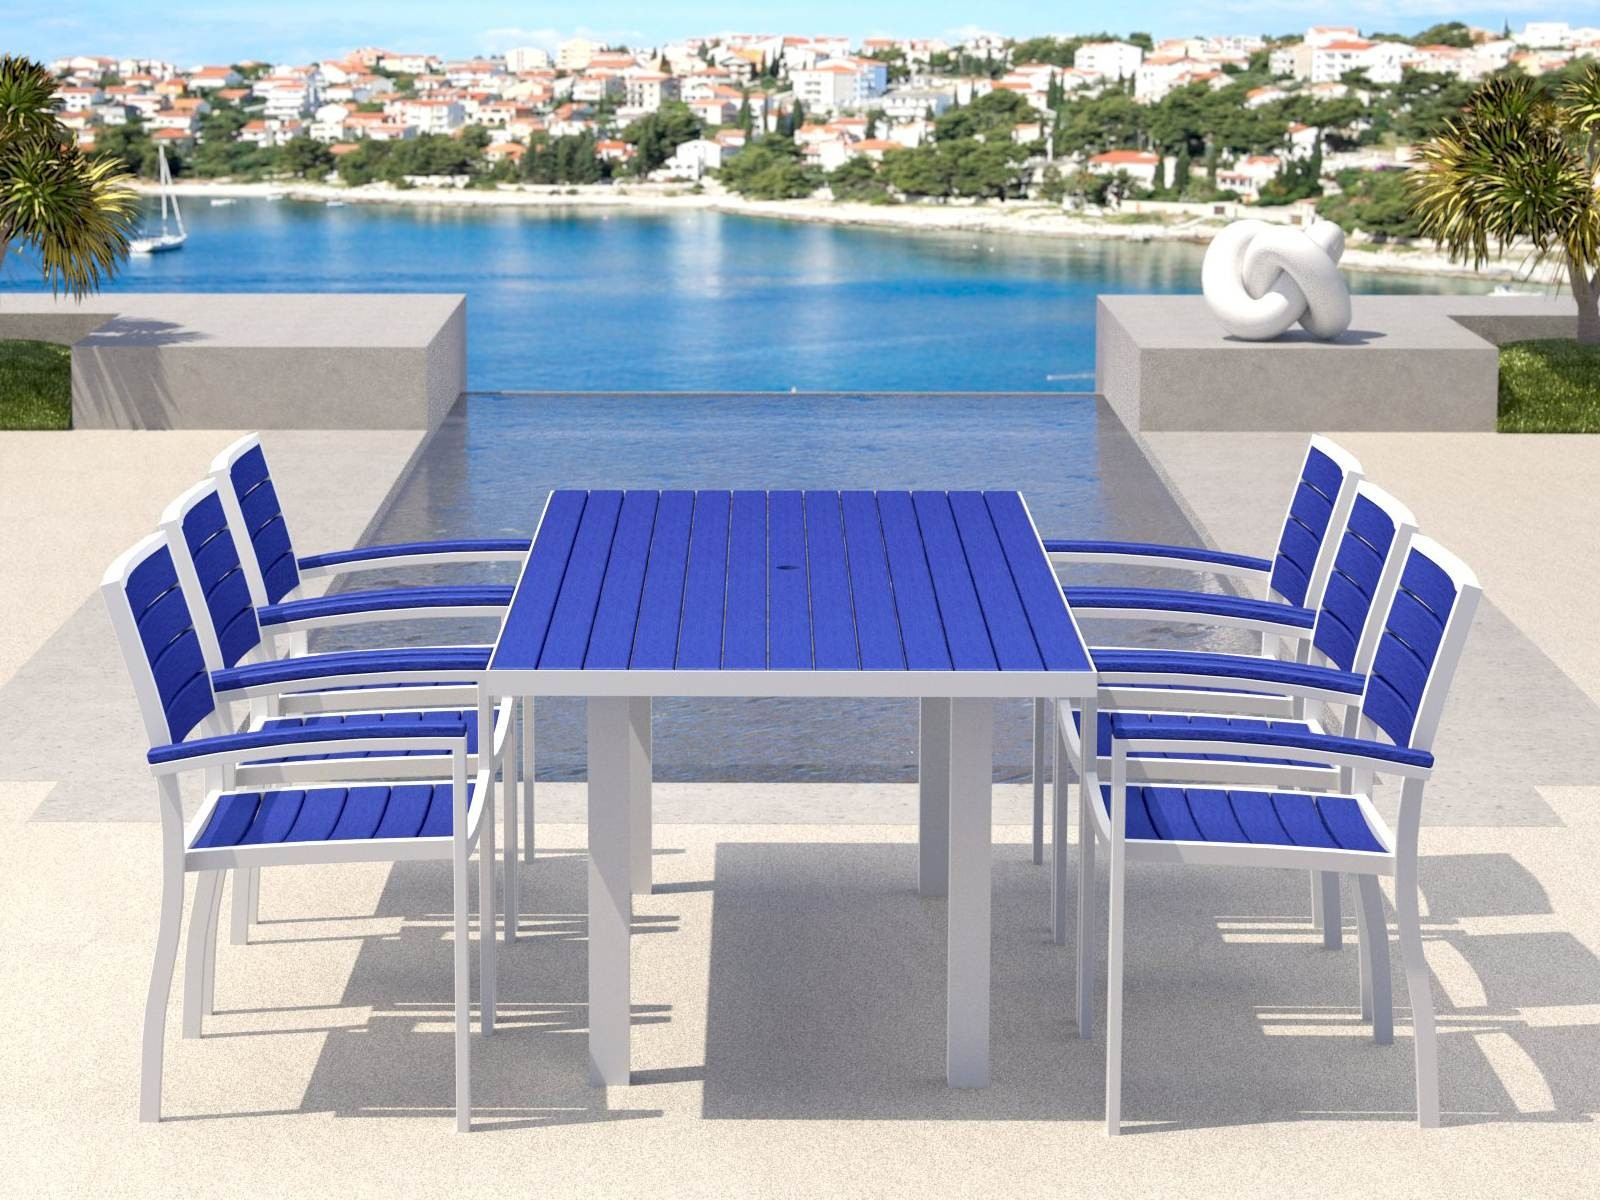 Pool Deck Chairs Be Earth Friendly With Outdoor Recycled Milk Jug Furniture